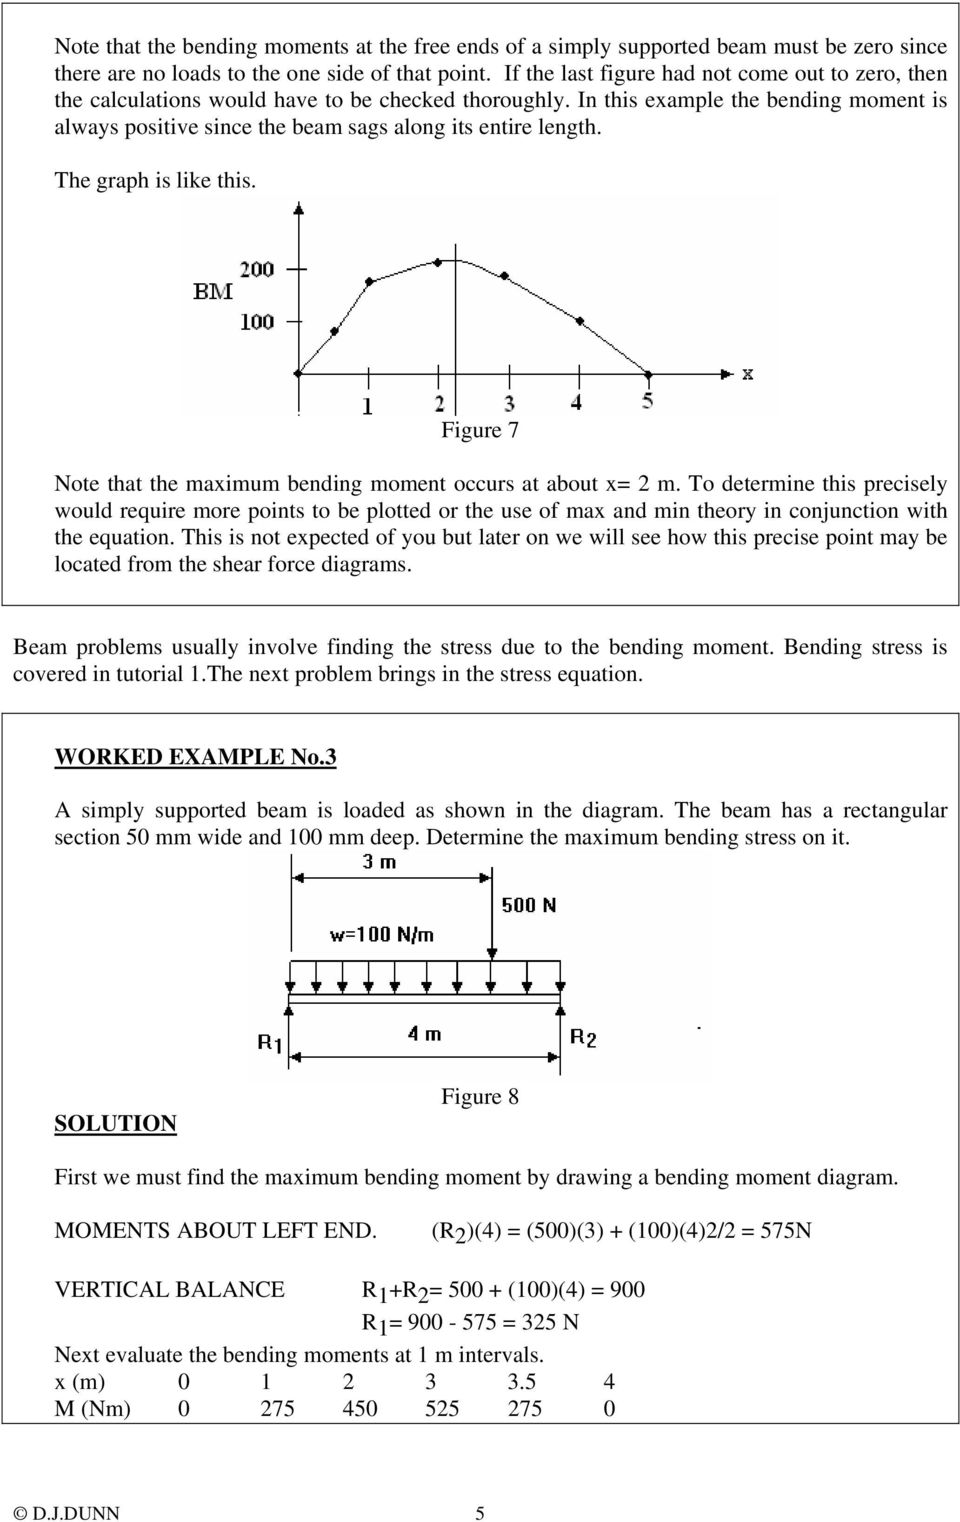 ENGINEERING SCIENCE H1 OUTCOME 1 - TUTORIAL 3 BENDING